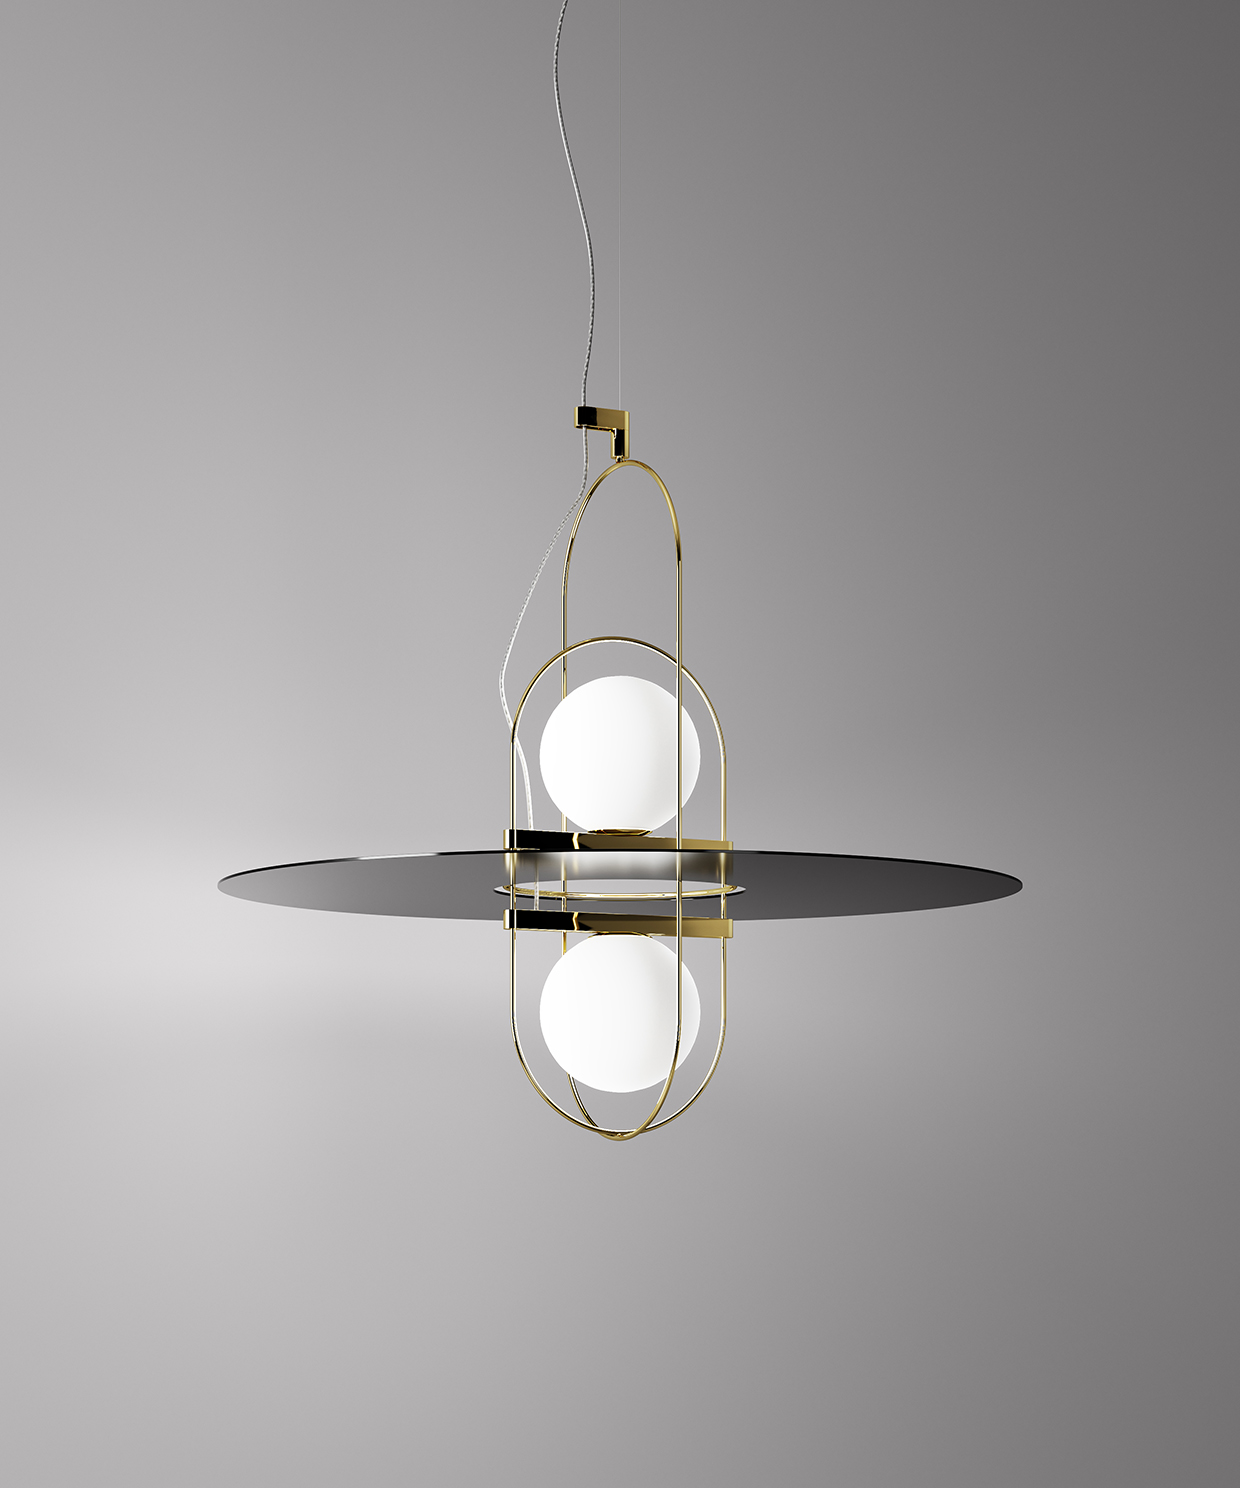 diffused lighting fixtures. The Light From Sphere Is Diffused Into Surrounding Space, Illuminating Frame. Reflections Of Metal Render Luminous Field Visible, Lighting Fixtures E